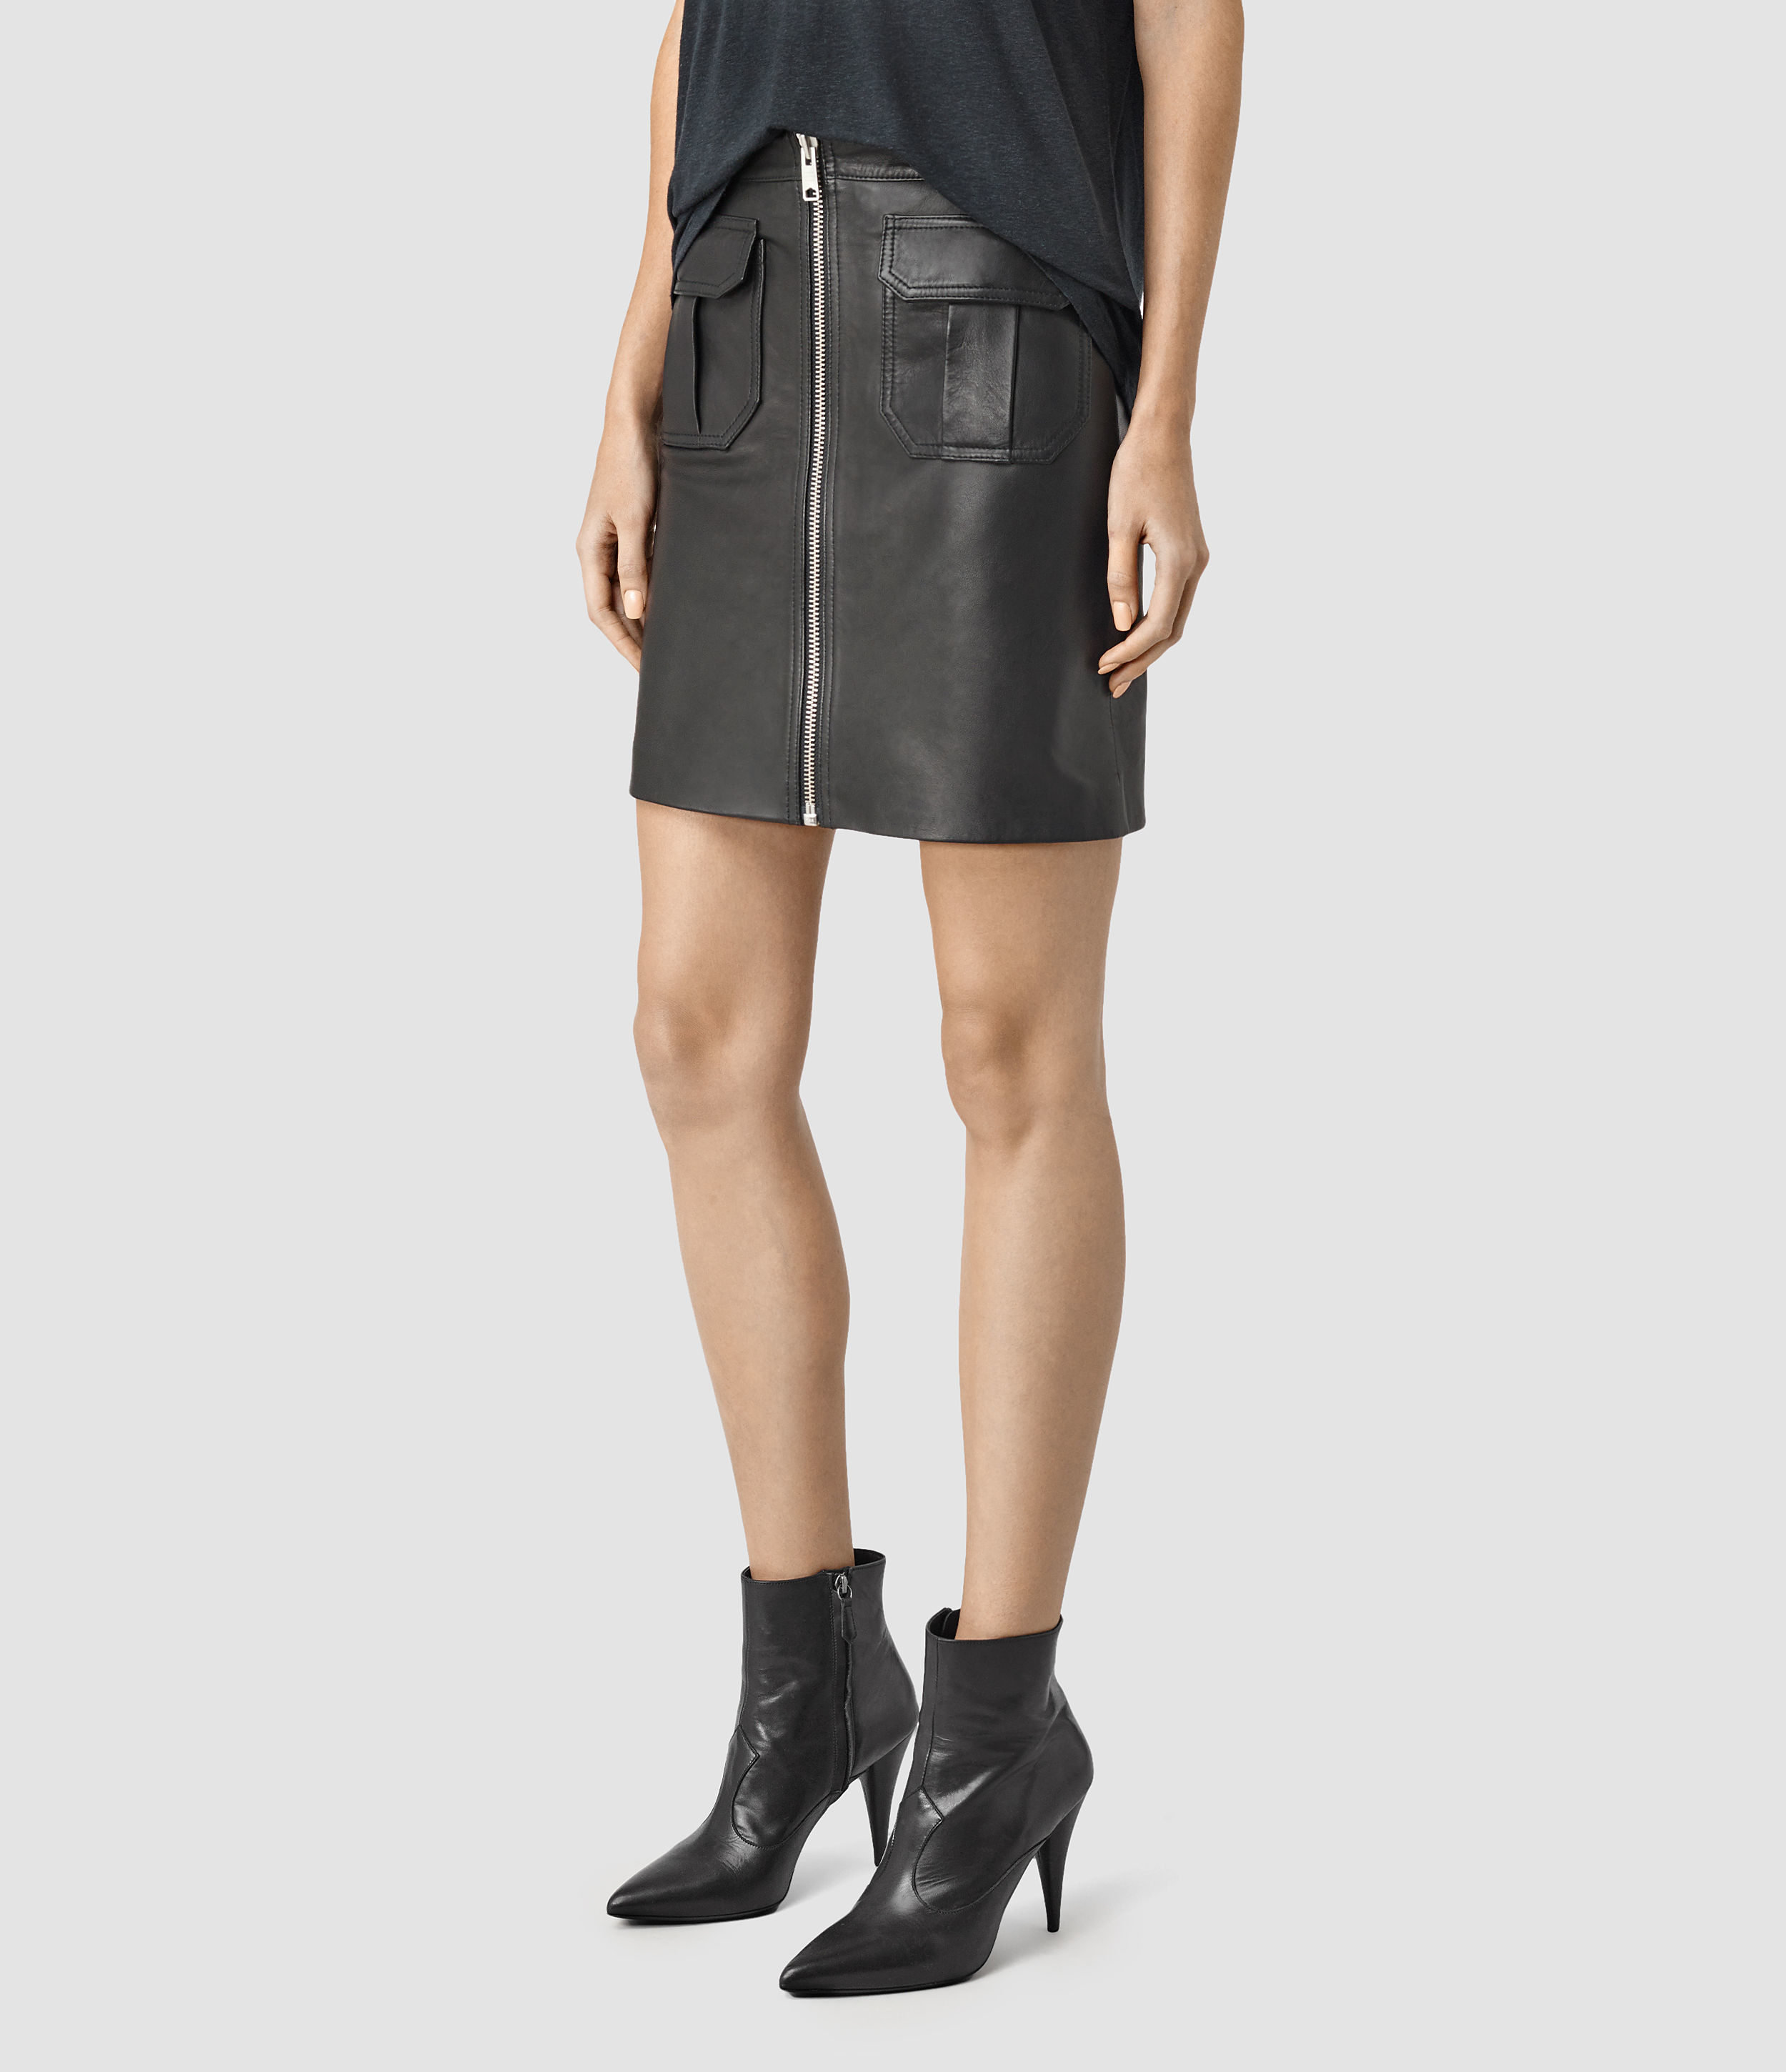 allsaints leather skirt usa usa in black lyst